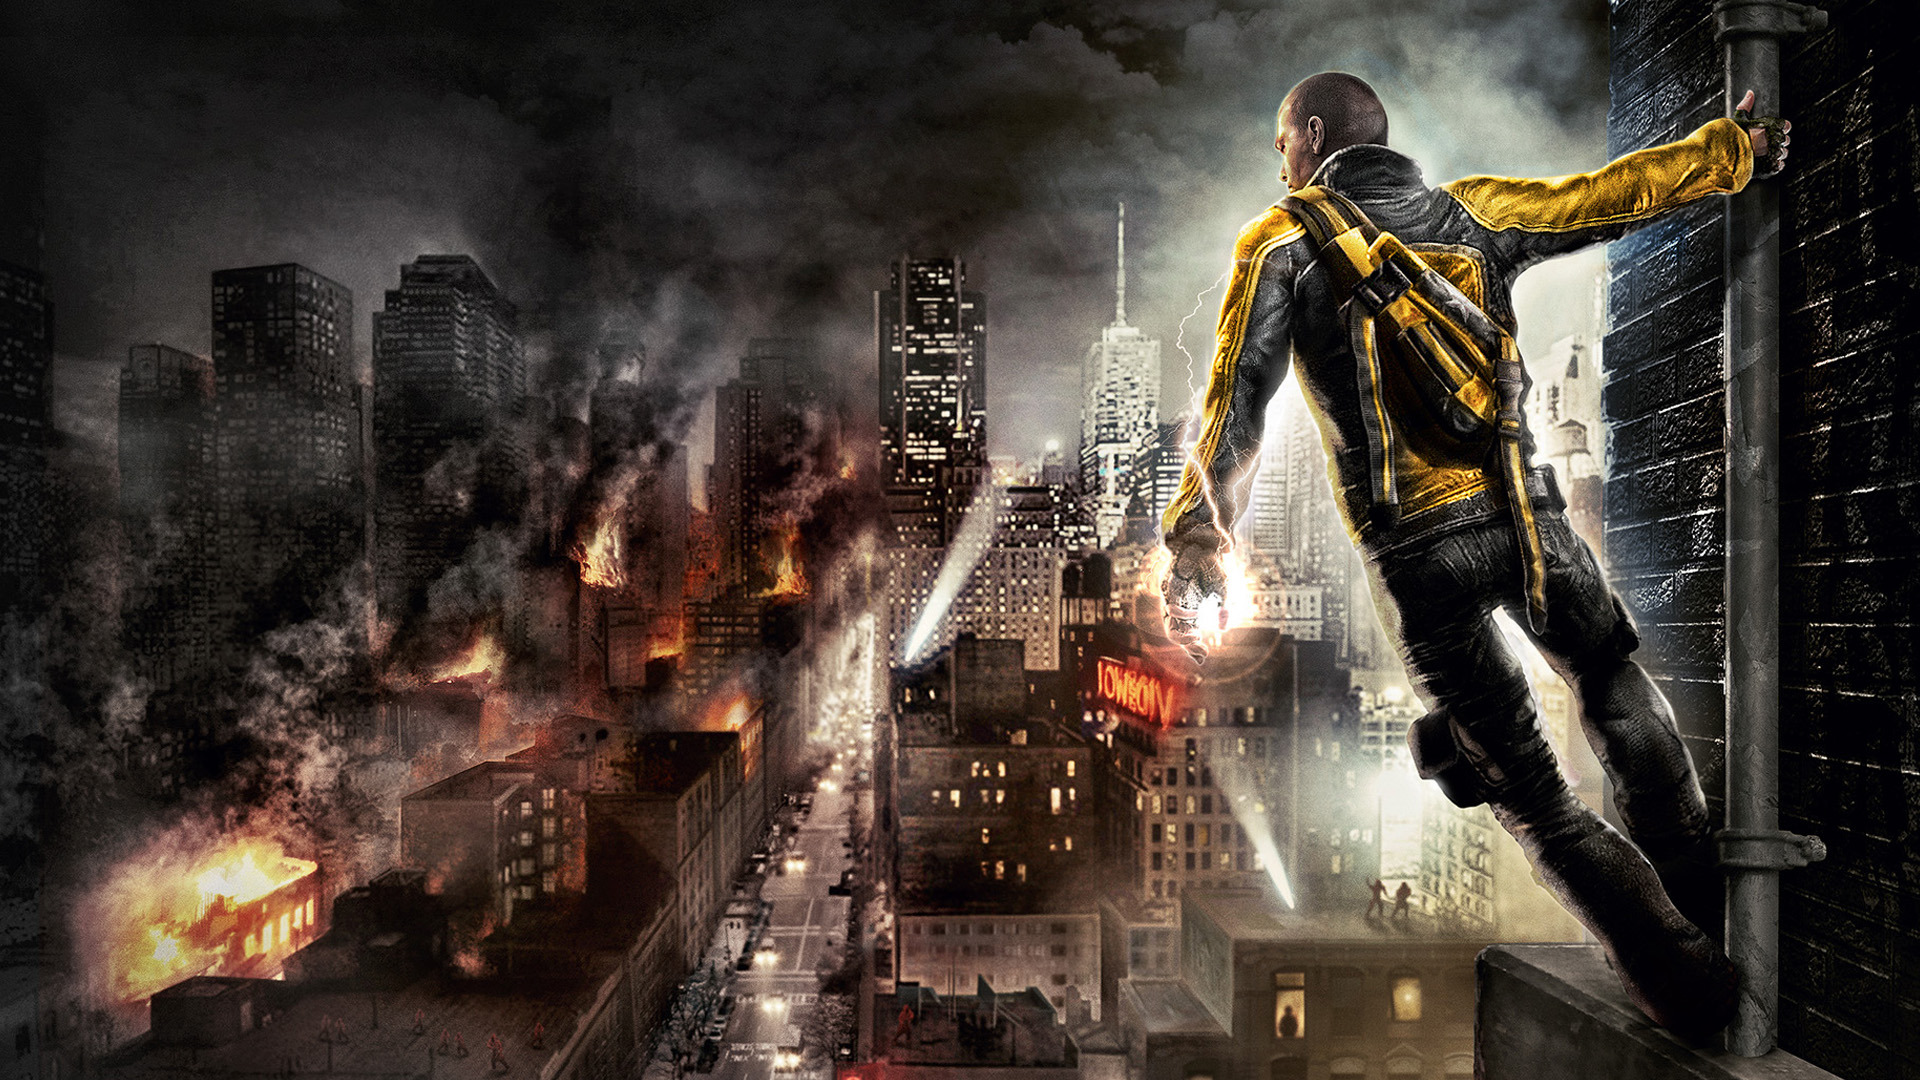 Infamous - A playthrough of Infamous